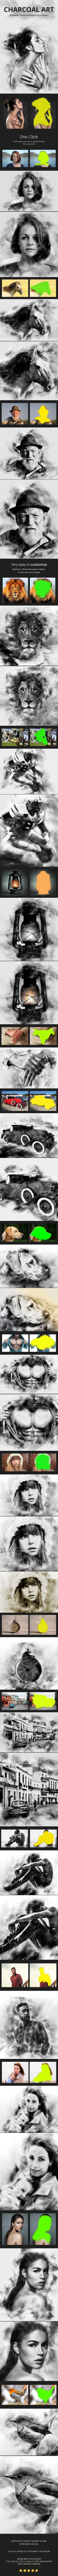 Charcoal Art - Realistic Charcoal Photoshop Action - Photo Effects Actions